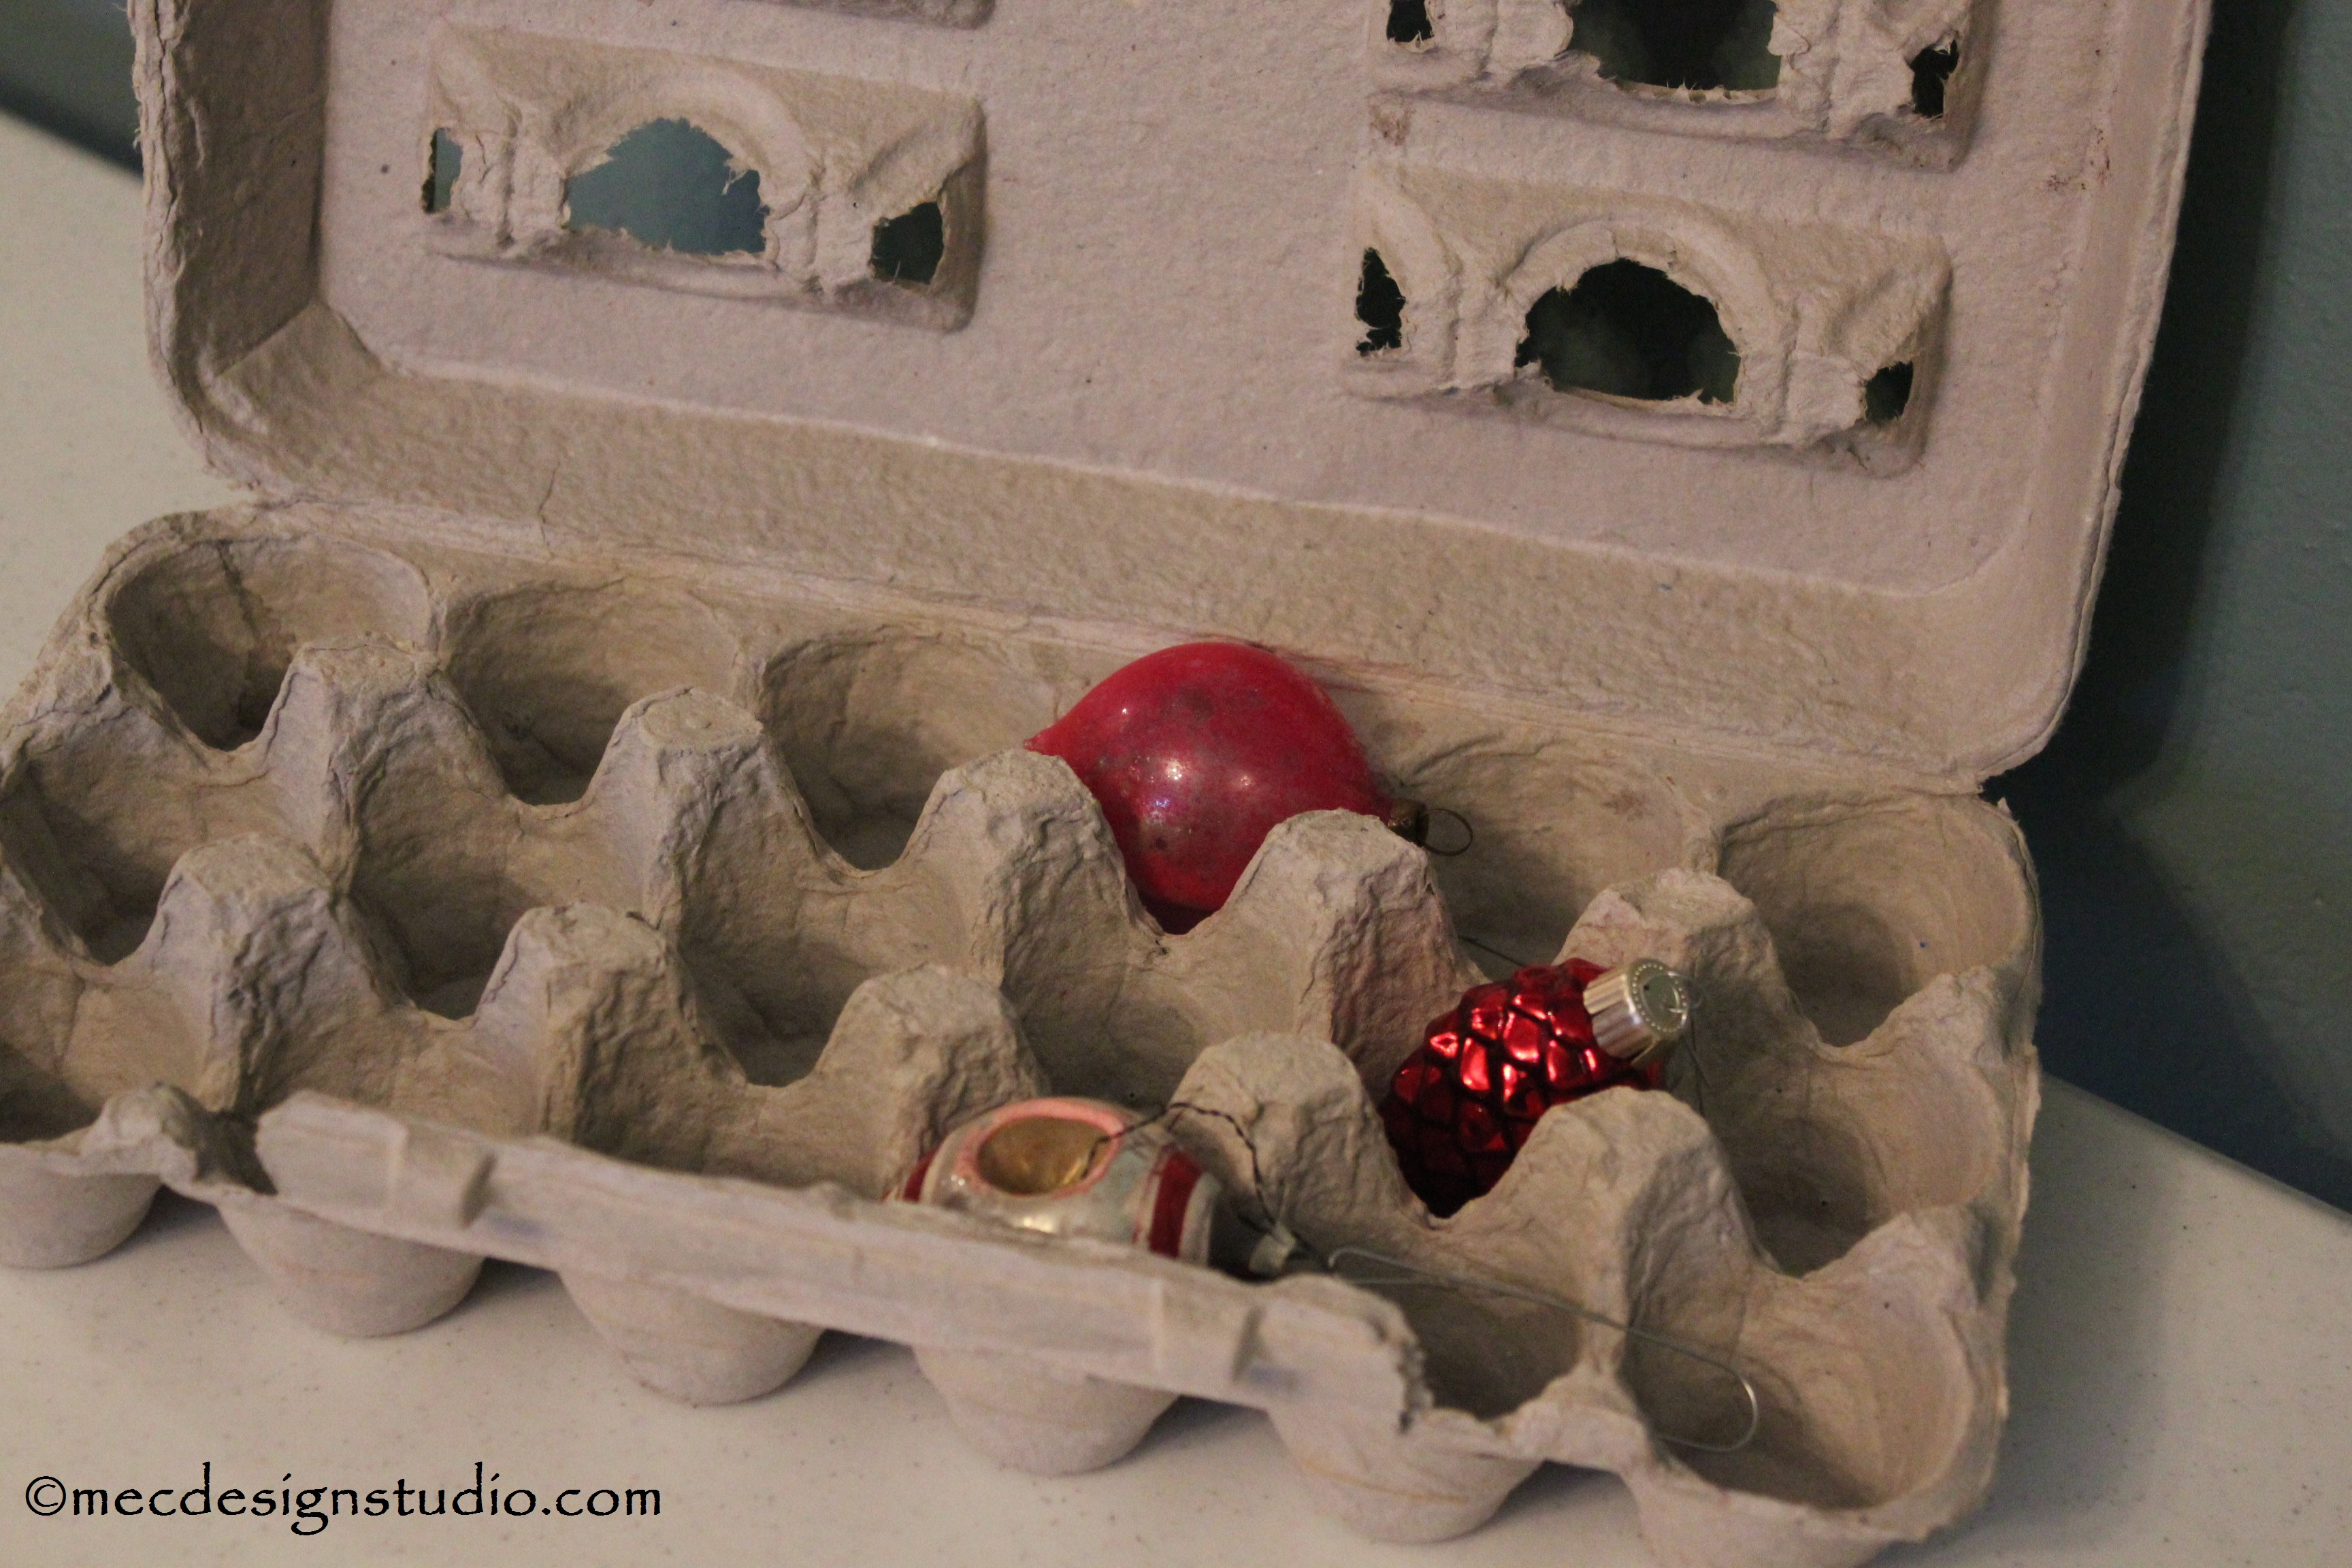 Storage Solutions for Holiday Decor